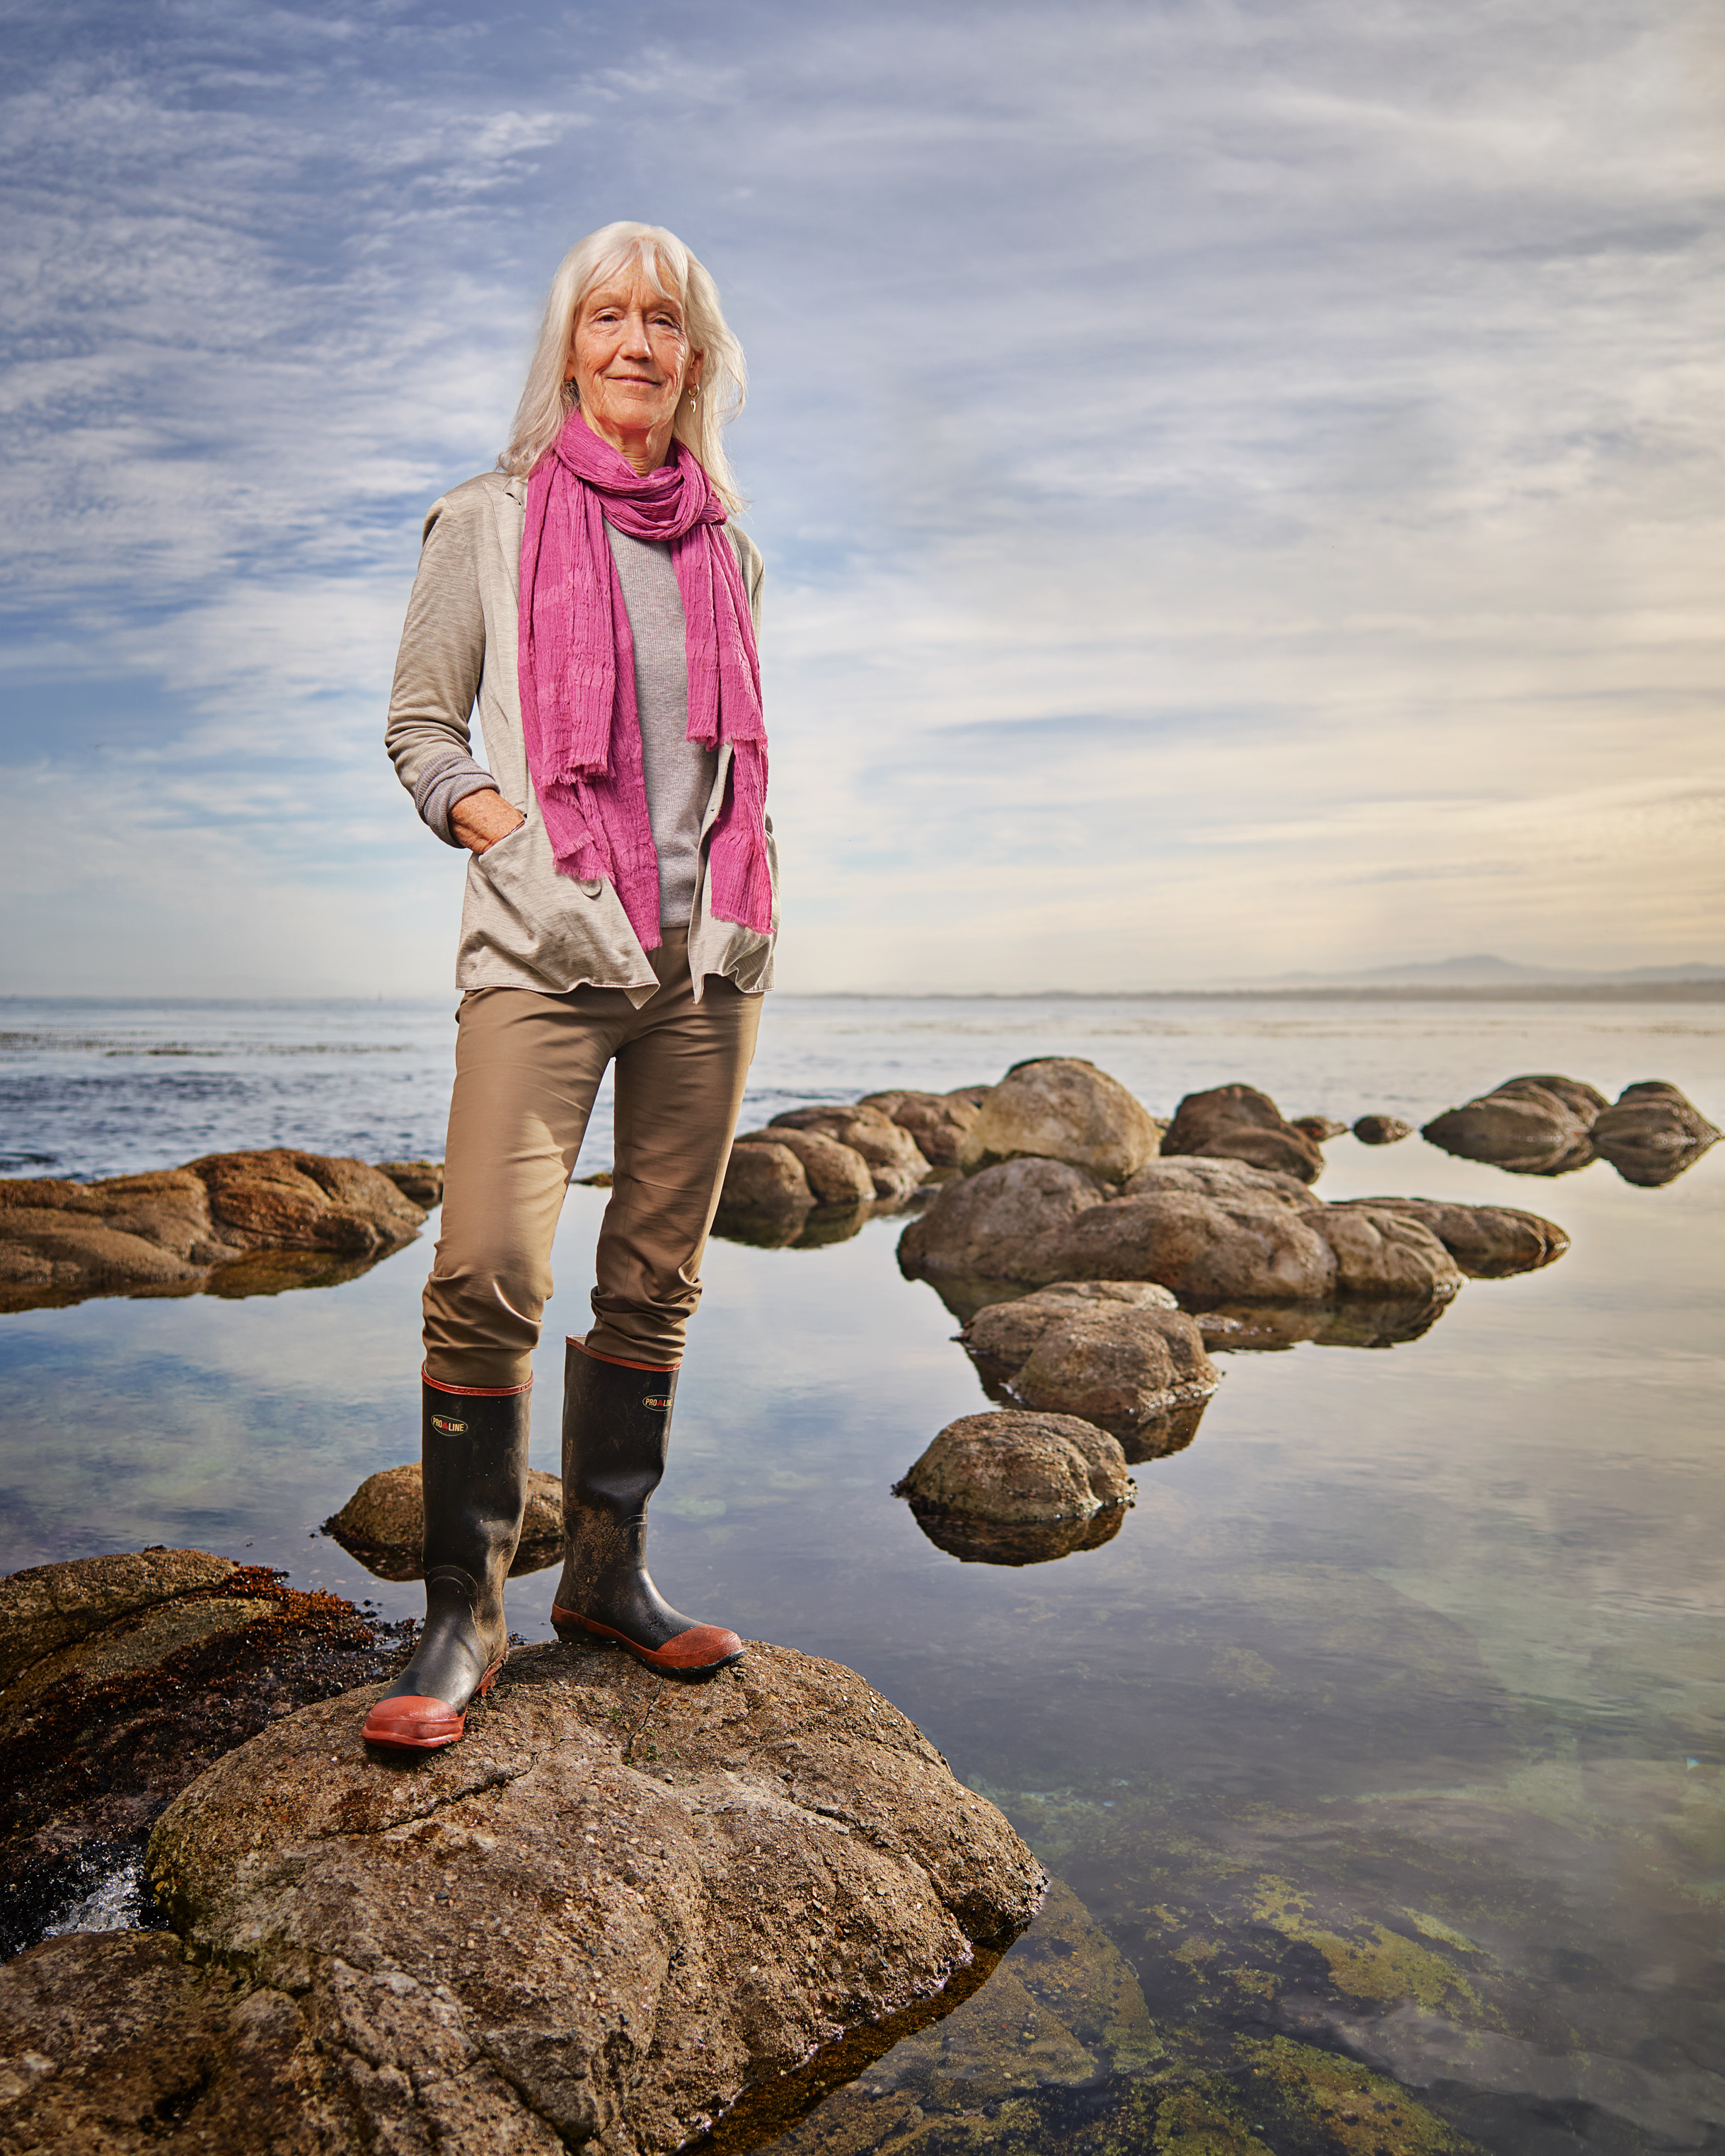 Julie Packard - Director of Monterey Bay Aquarium